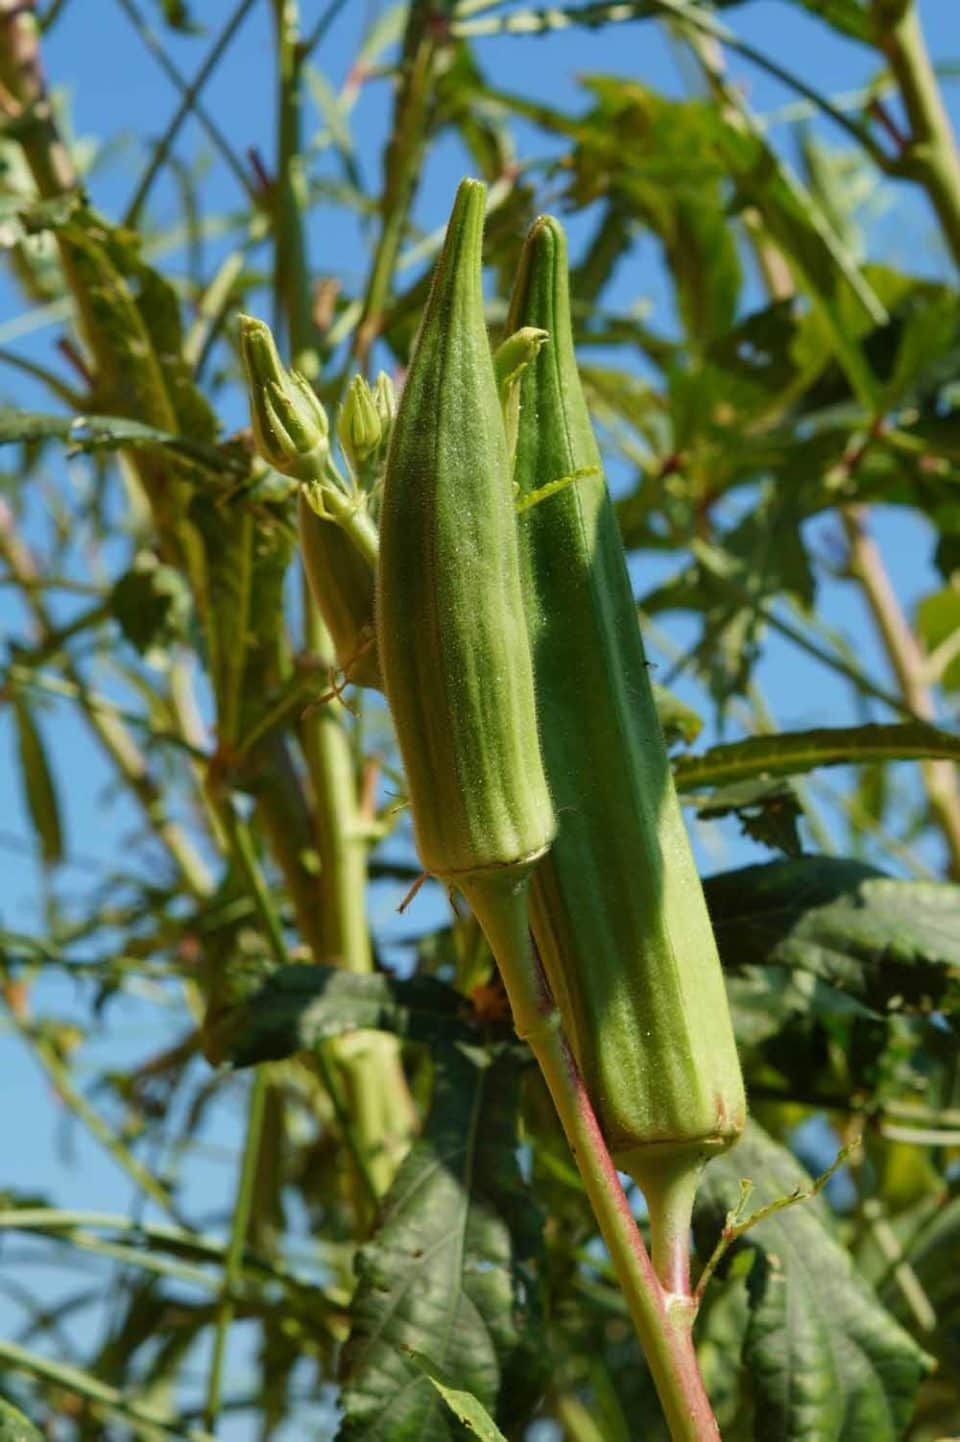 okra growing at a school garden